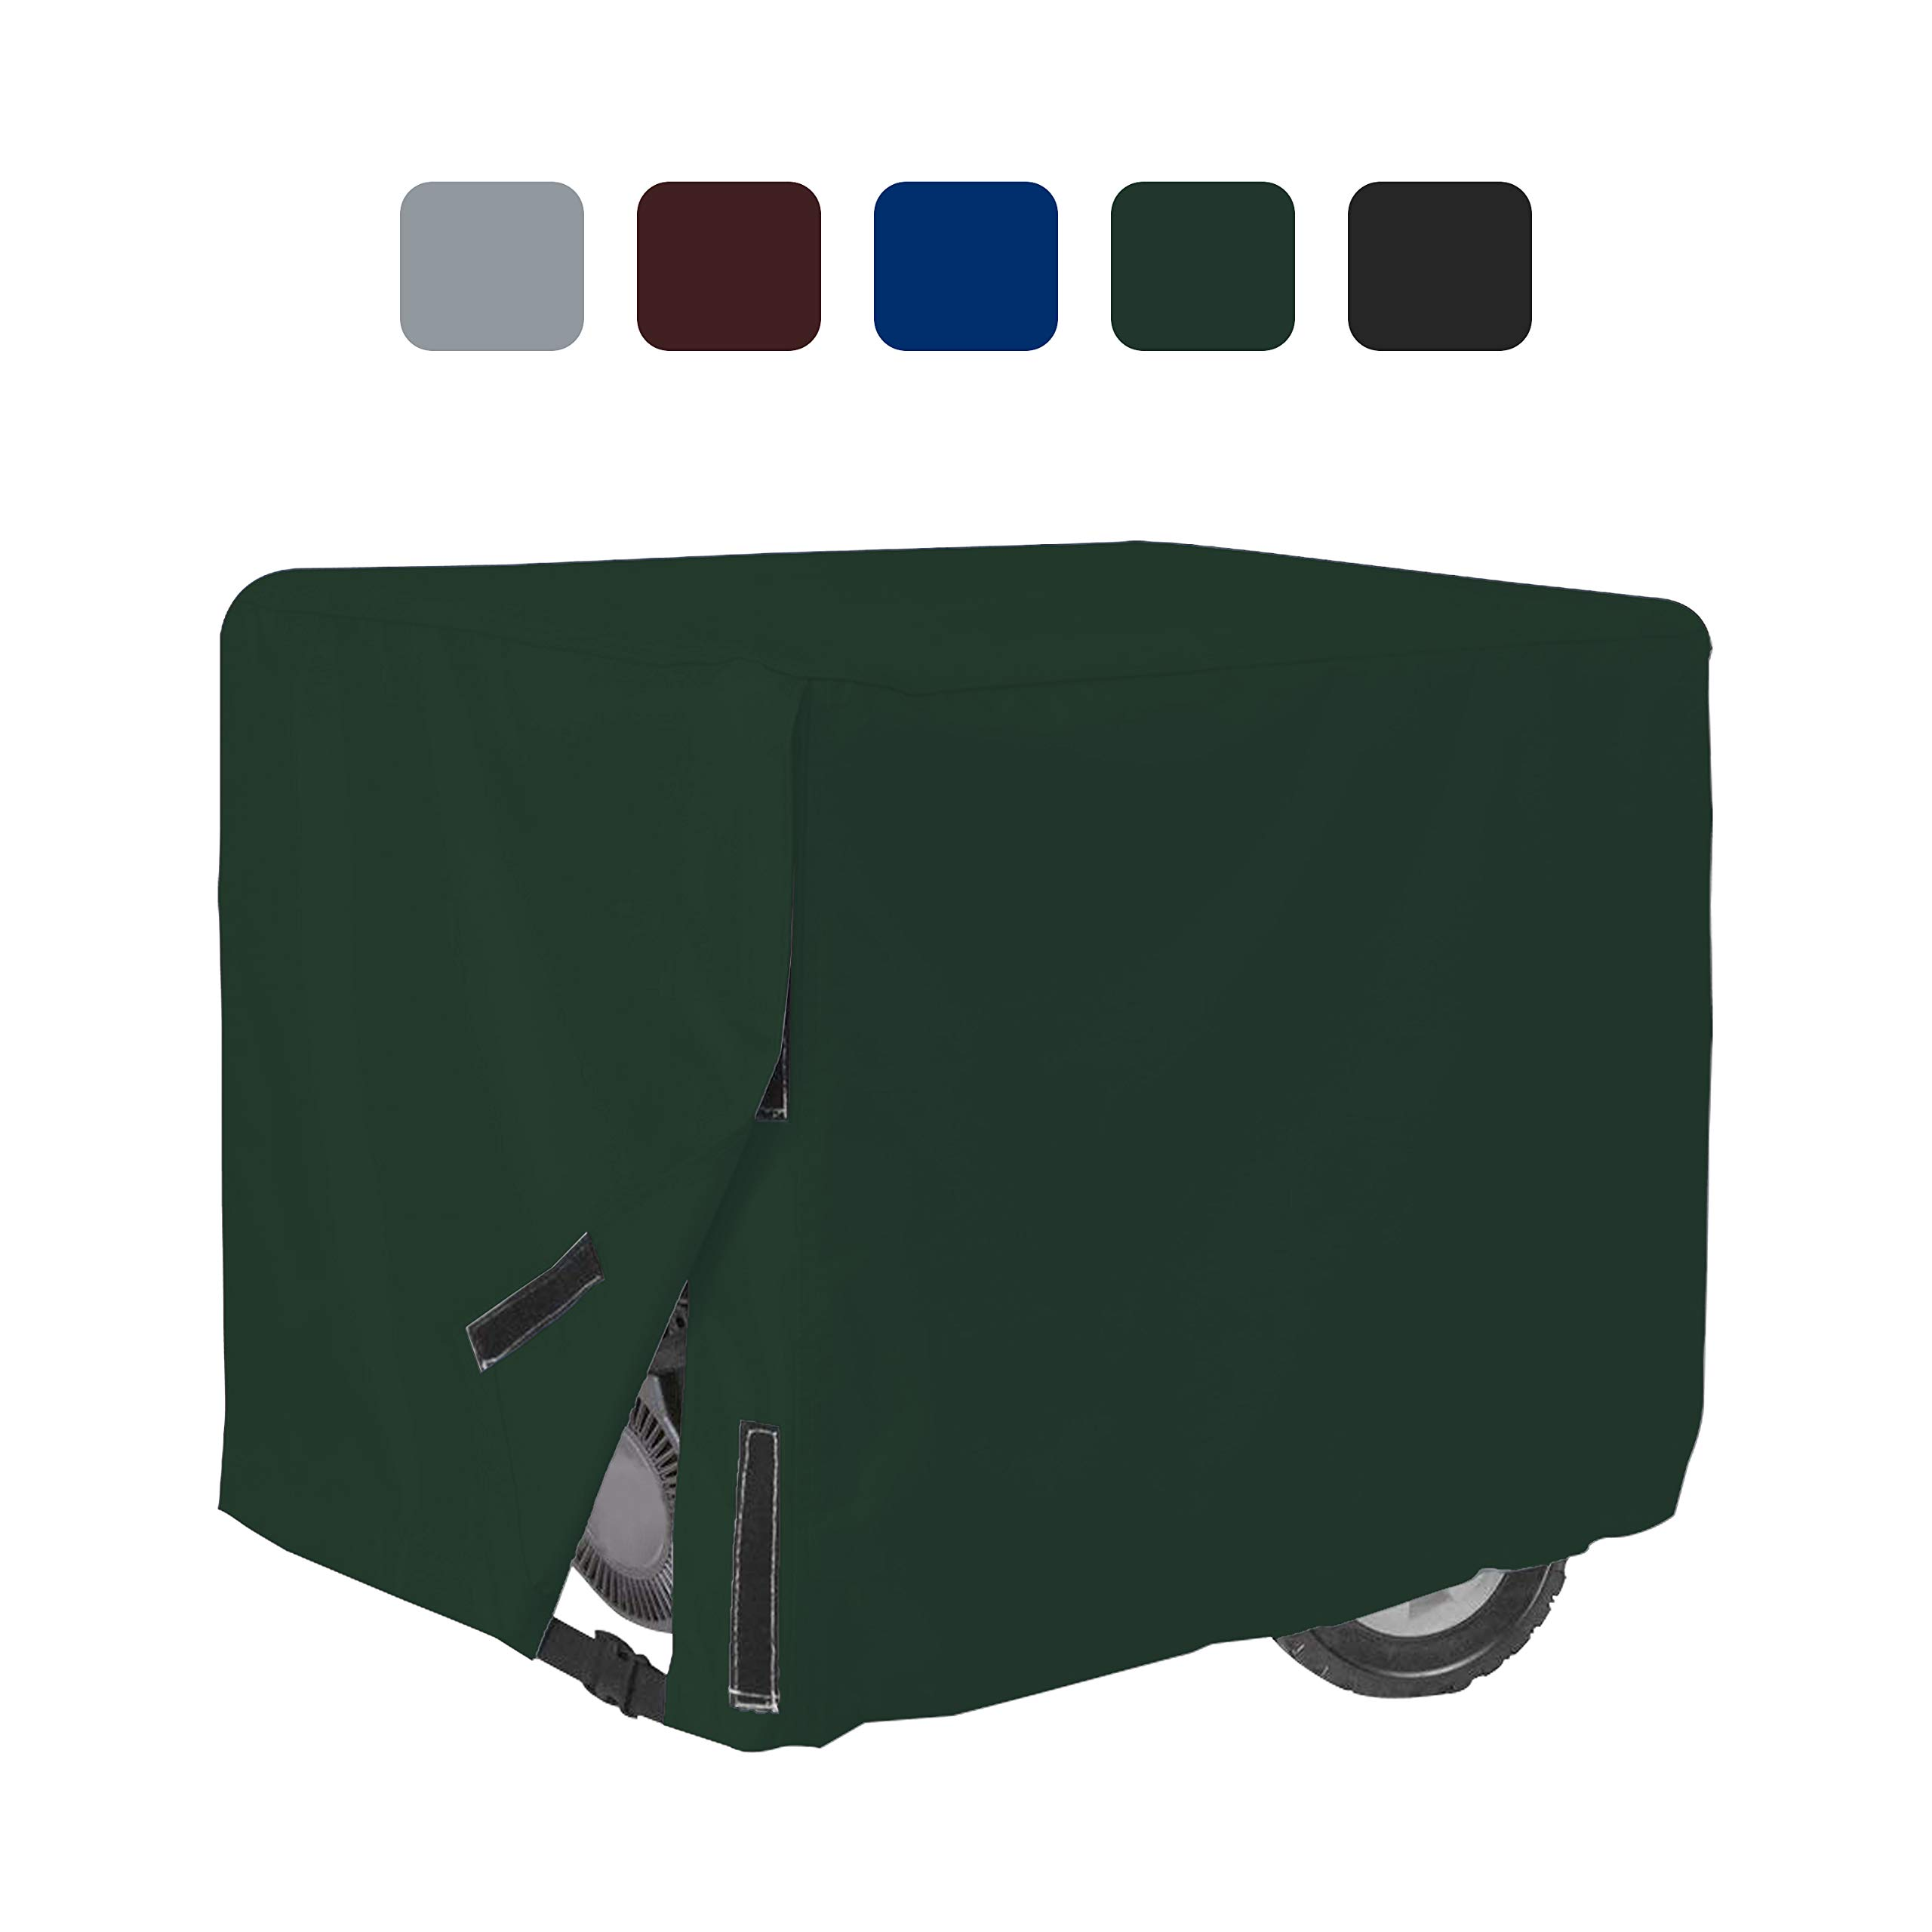 Outdoor Generator Covers 18 Oz Waterproof - 100% UV & Weather Resistant PVC Coated Generator Cover with Air Pockets and Drawstring for Sungfit (32'' X 24'' X 24'', Green)